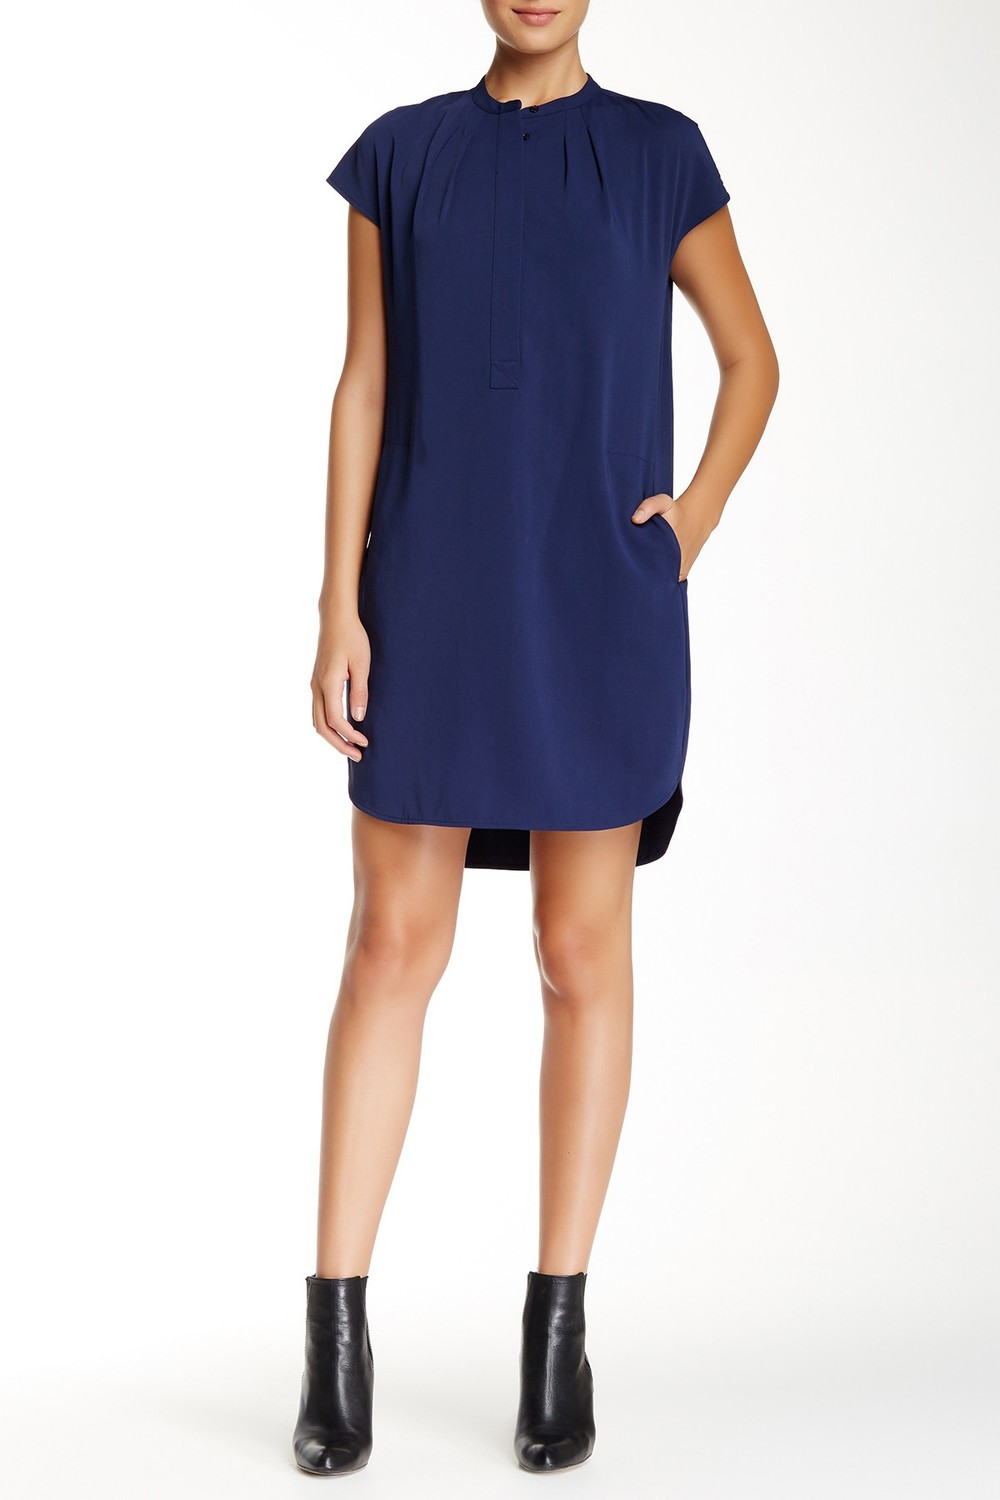 Vince Silk Combo Popover Dress. Available in two colors. Nordstrom Rack. Was: $365 Now: $149.